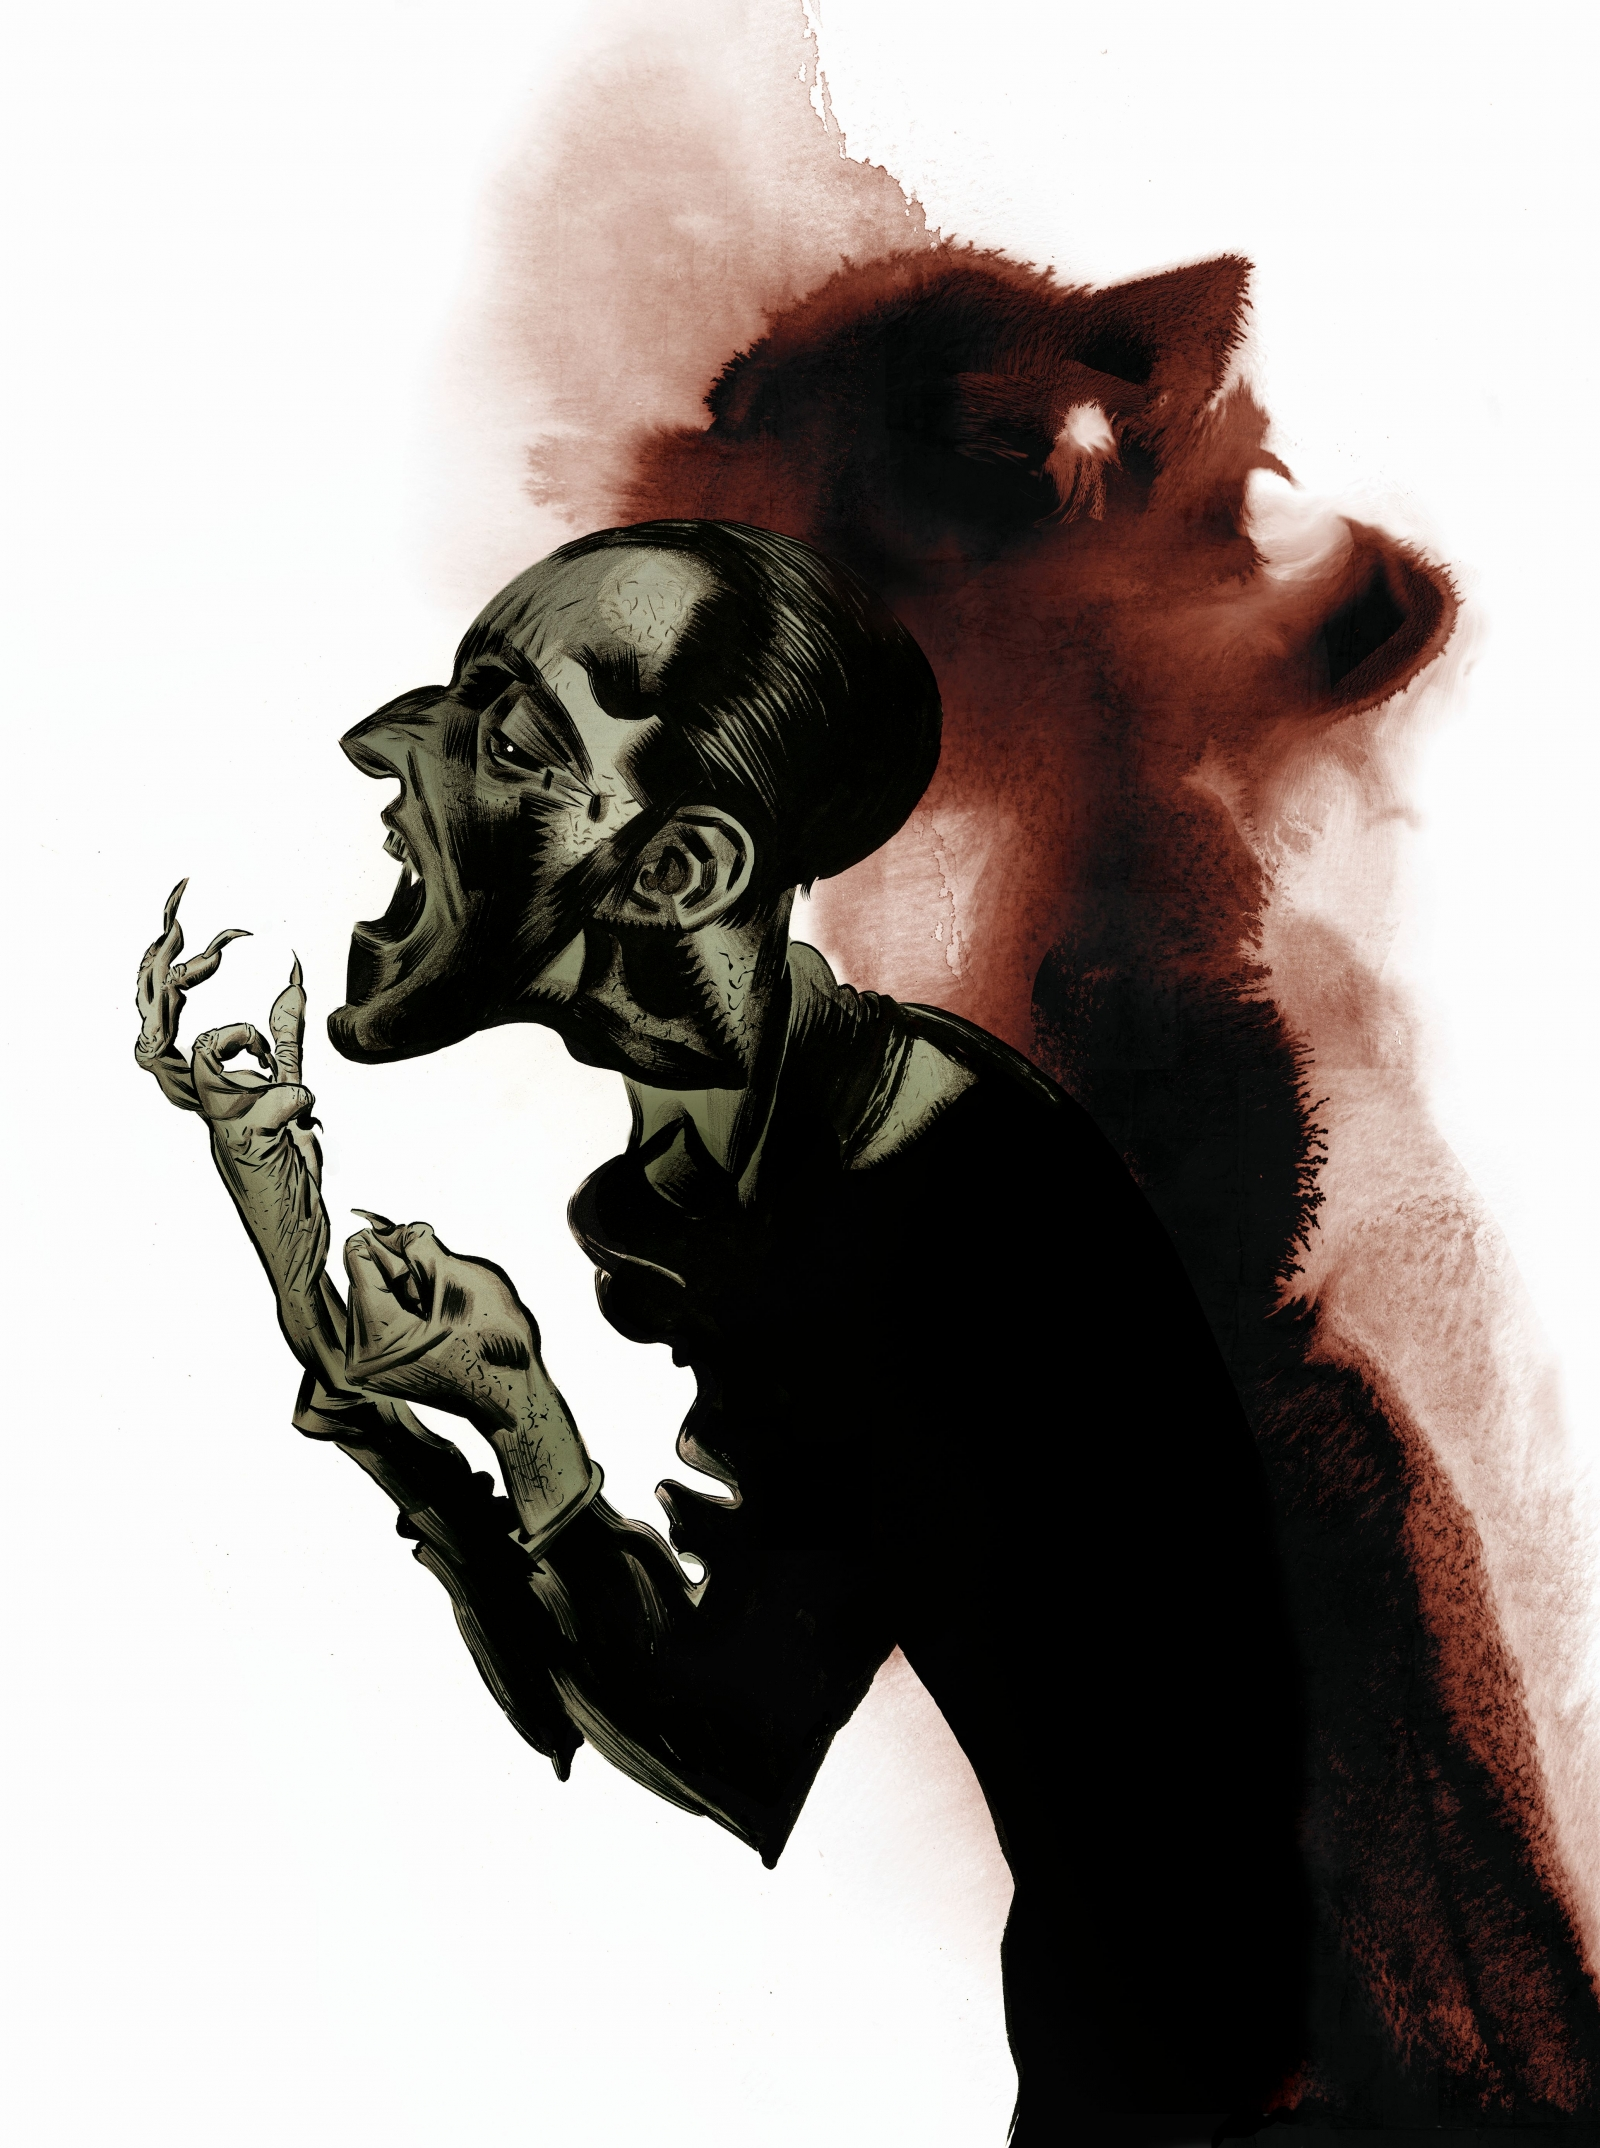 Artist Dave McKean's new artwork for Terror and Wonder: The Gothic Imagination